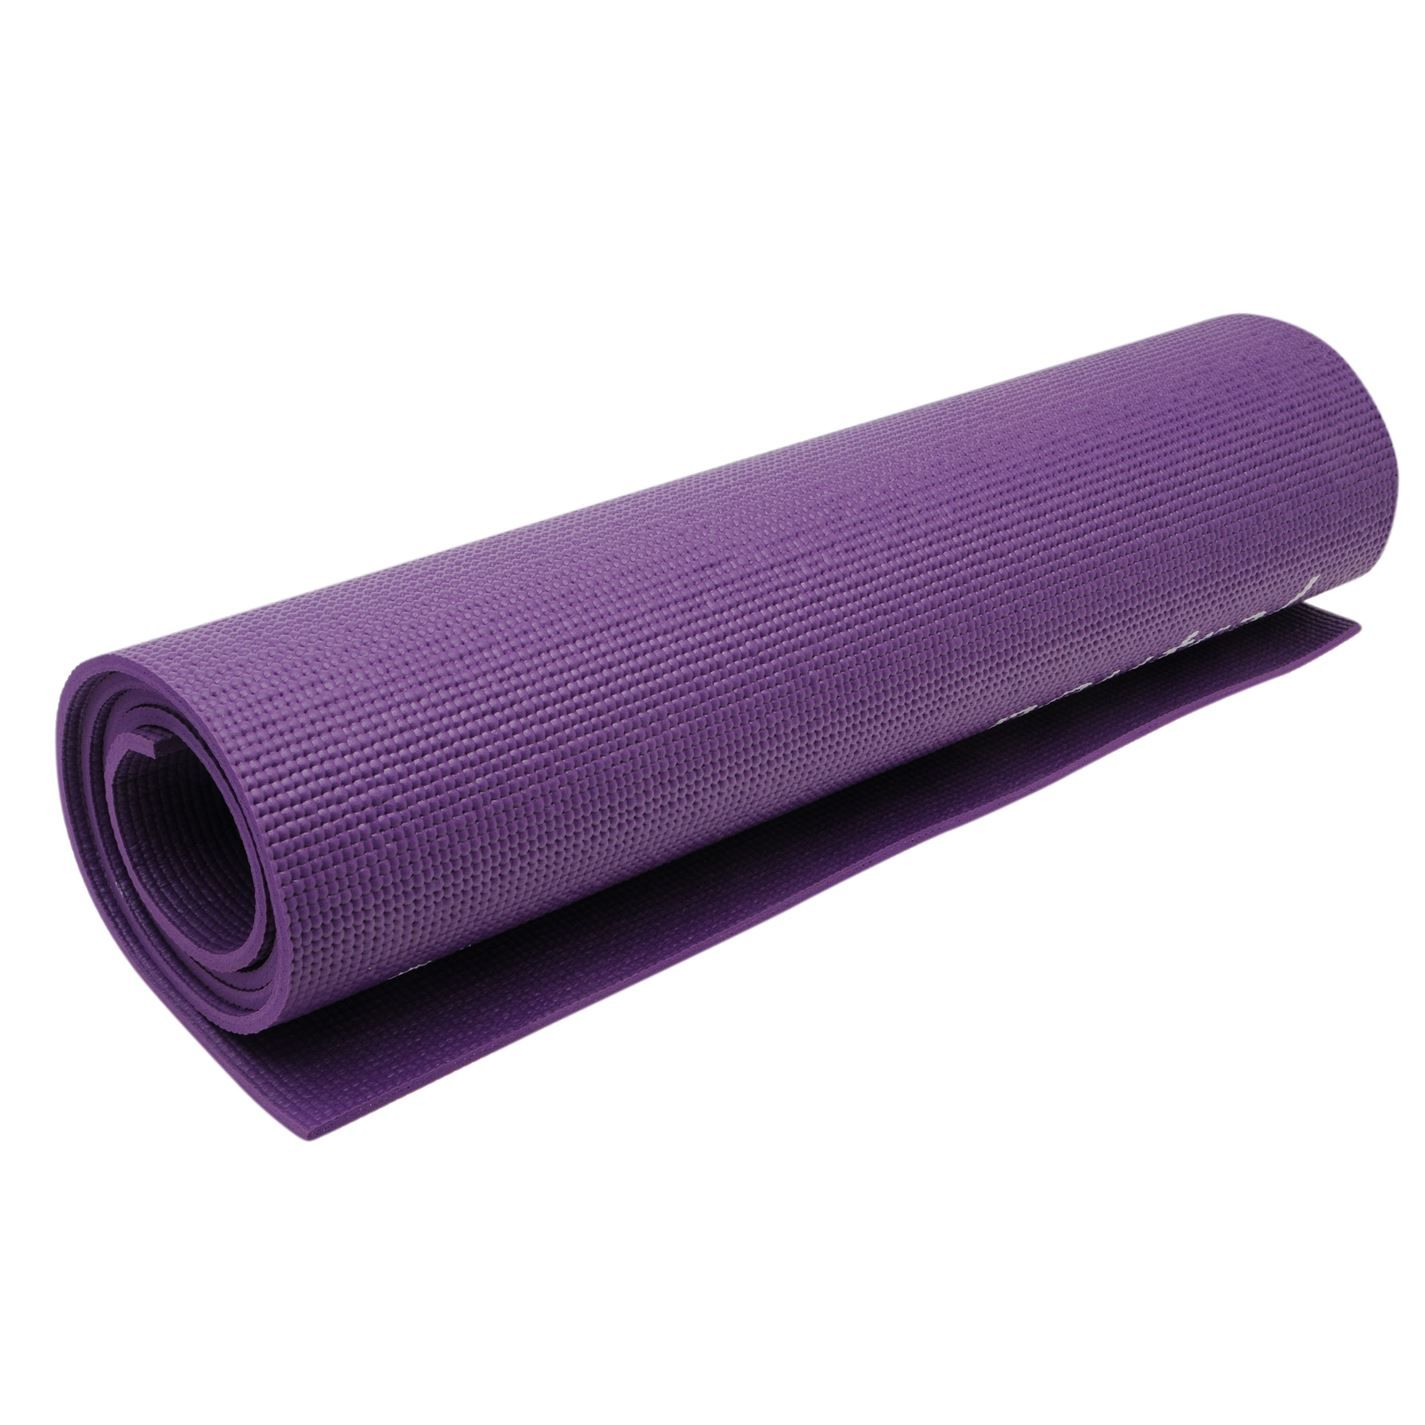 USA Pro Lux Yoga Mat >> Now £9.99 #Health #fitness